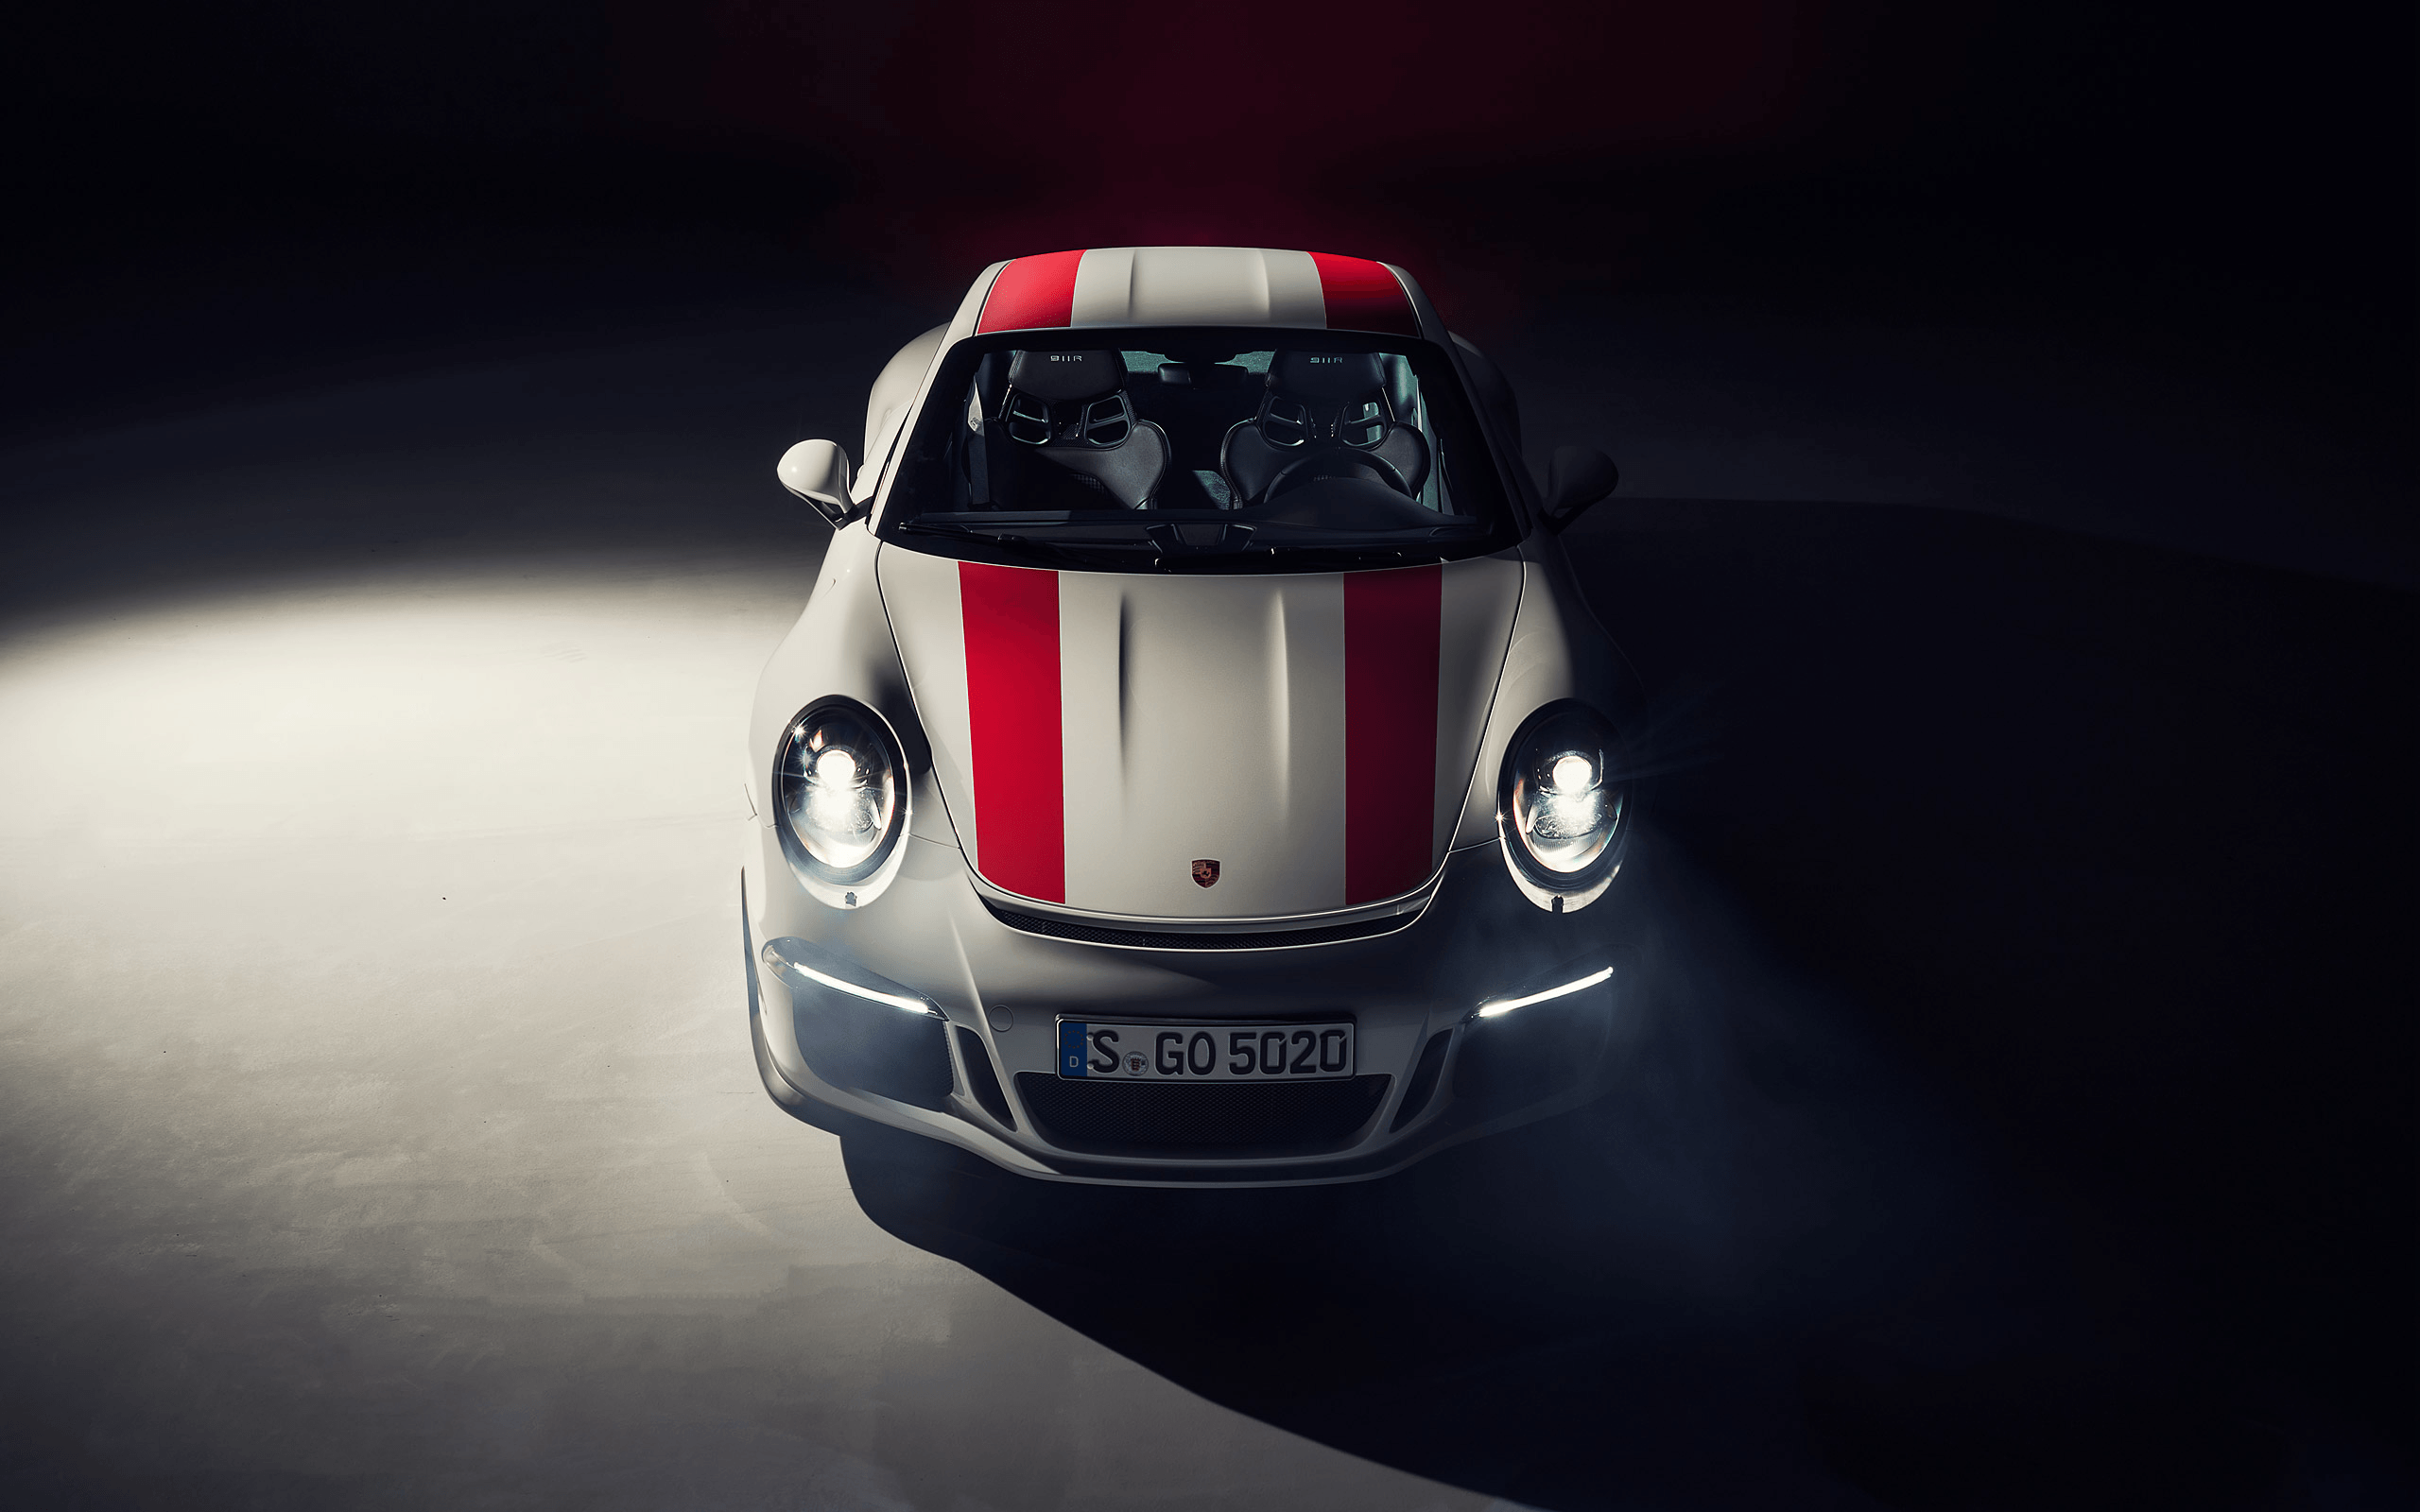 Porsche Hd Wallpapers 1080p: Porsche 911 R Wallpapers